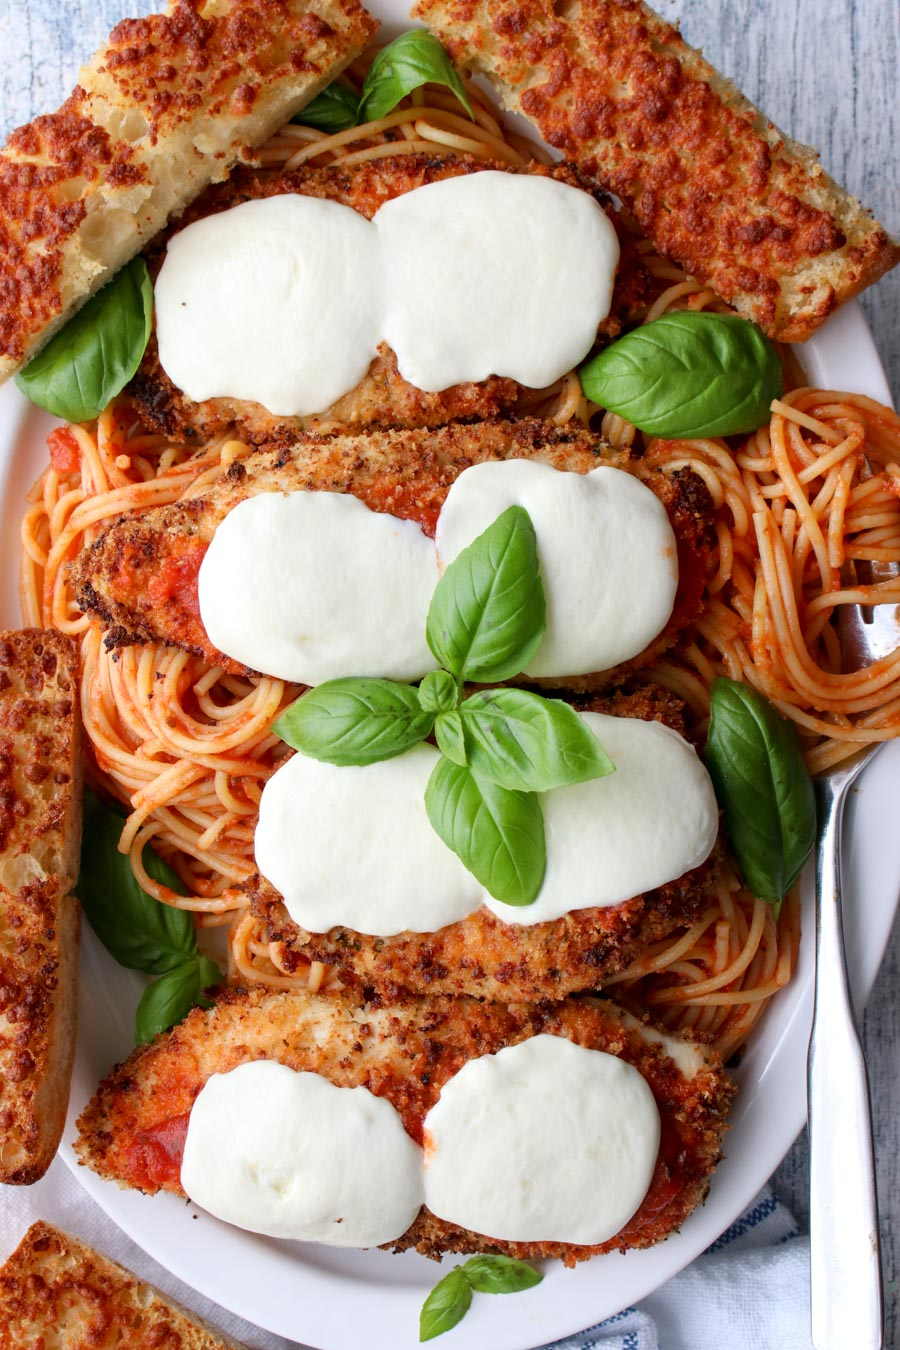 platter of spaghetti and chicken parmesan with garlic bread